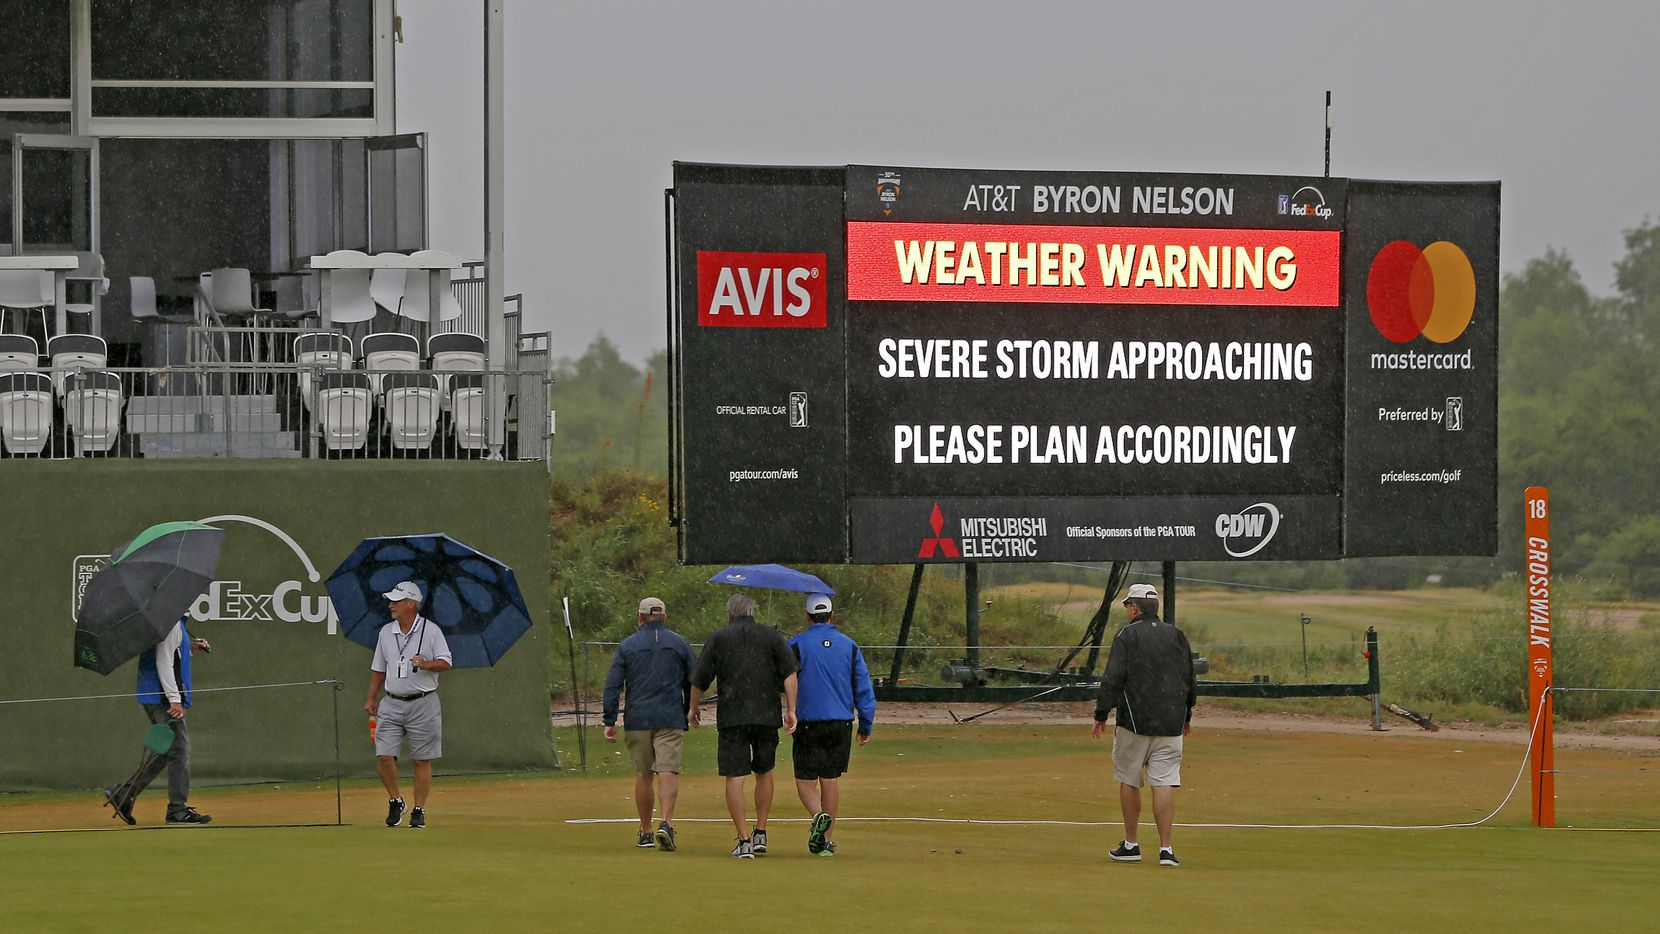 Fans crossed the 18th fairway during a weather delay of the final round of AT&T Byron Nelson at Trinity Forest Golf Club in 2018. (Jae S. Lee/The Dallas Morning News)